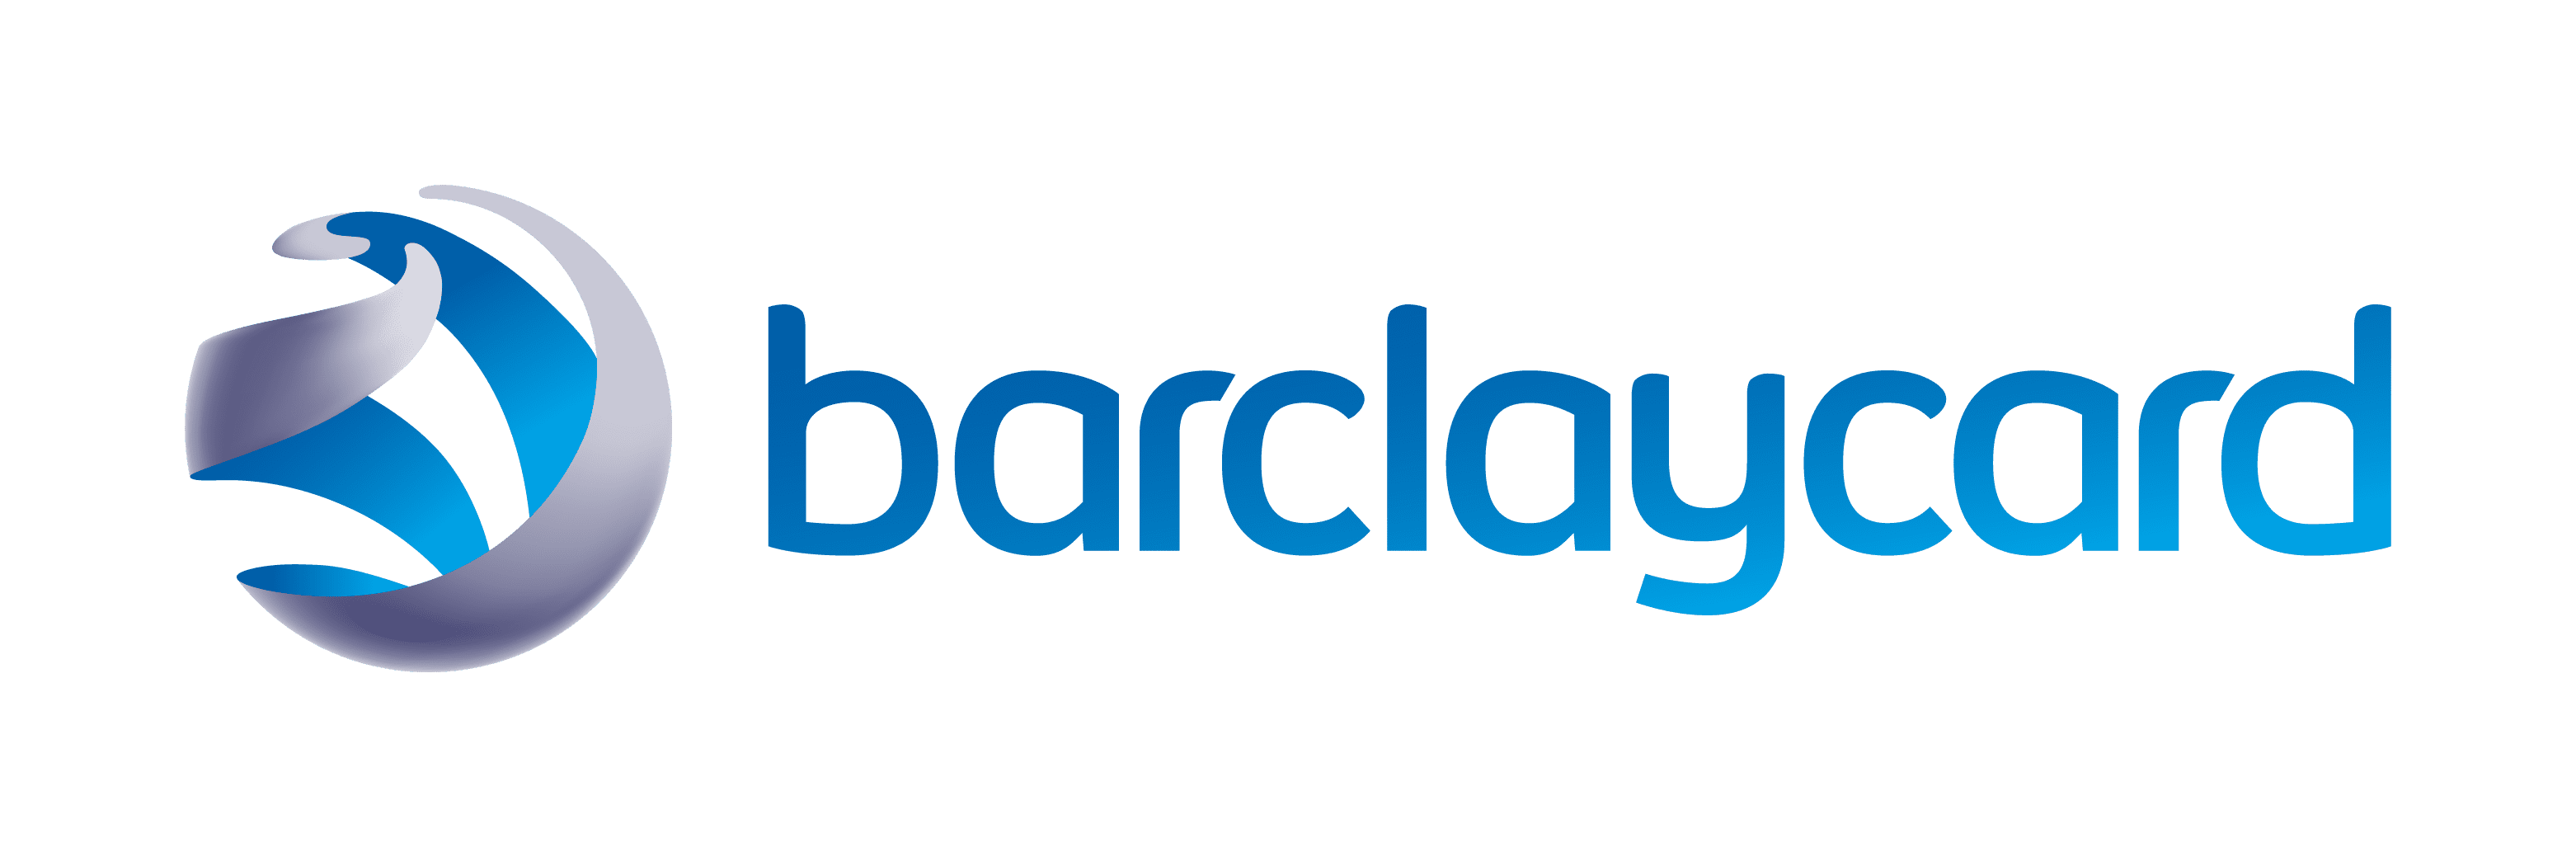 Barclaycard (opens in a new tab)